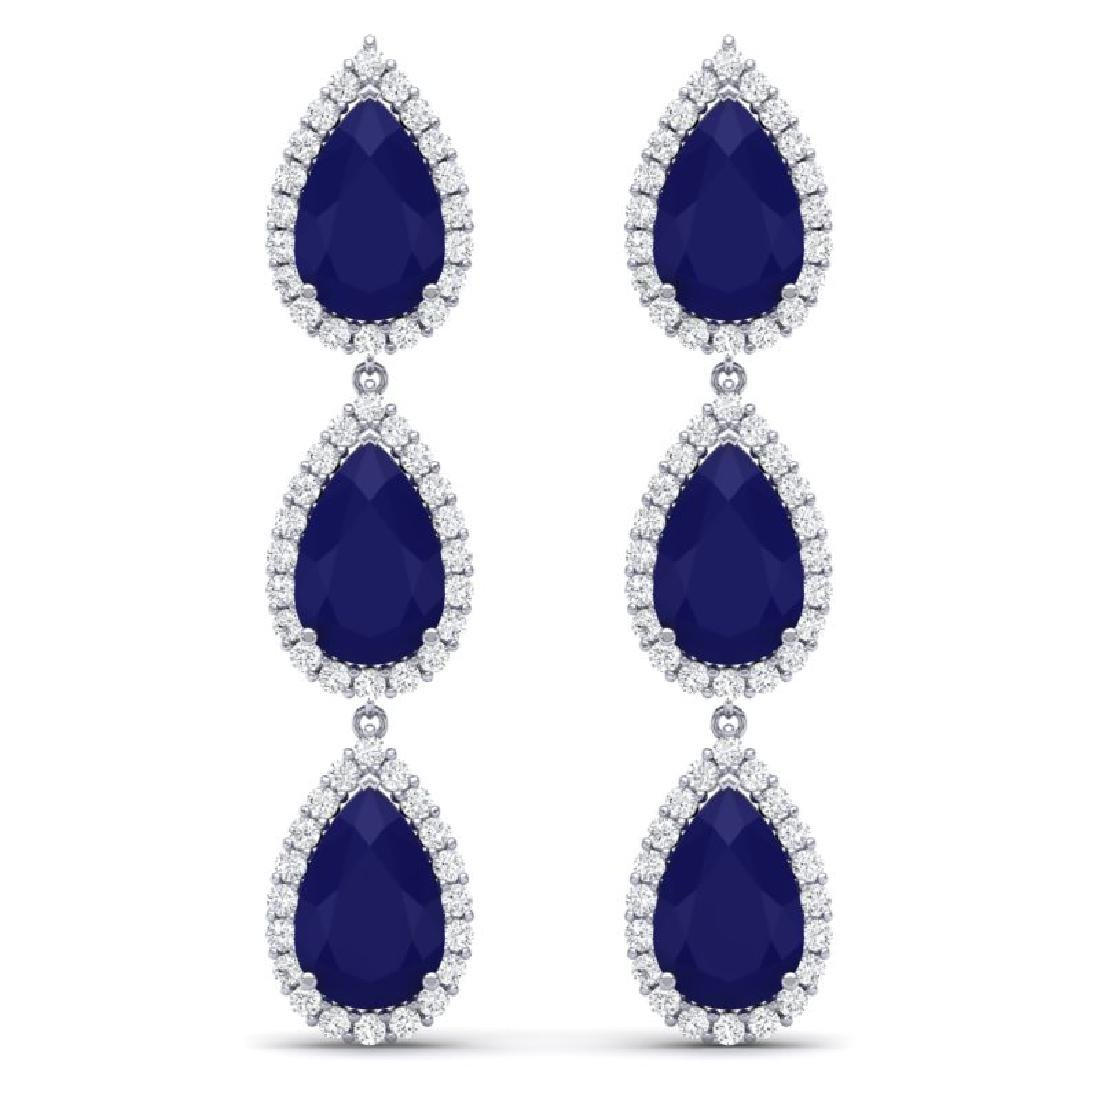 27.06 CTW Royalty Sapphire & VS Diamond Earrings 18K